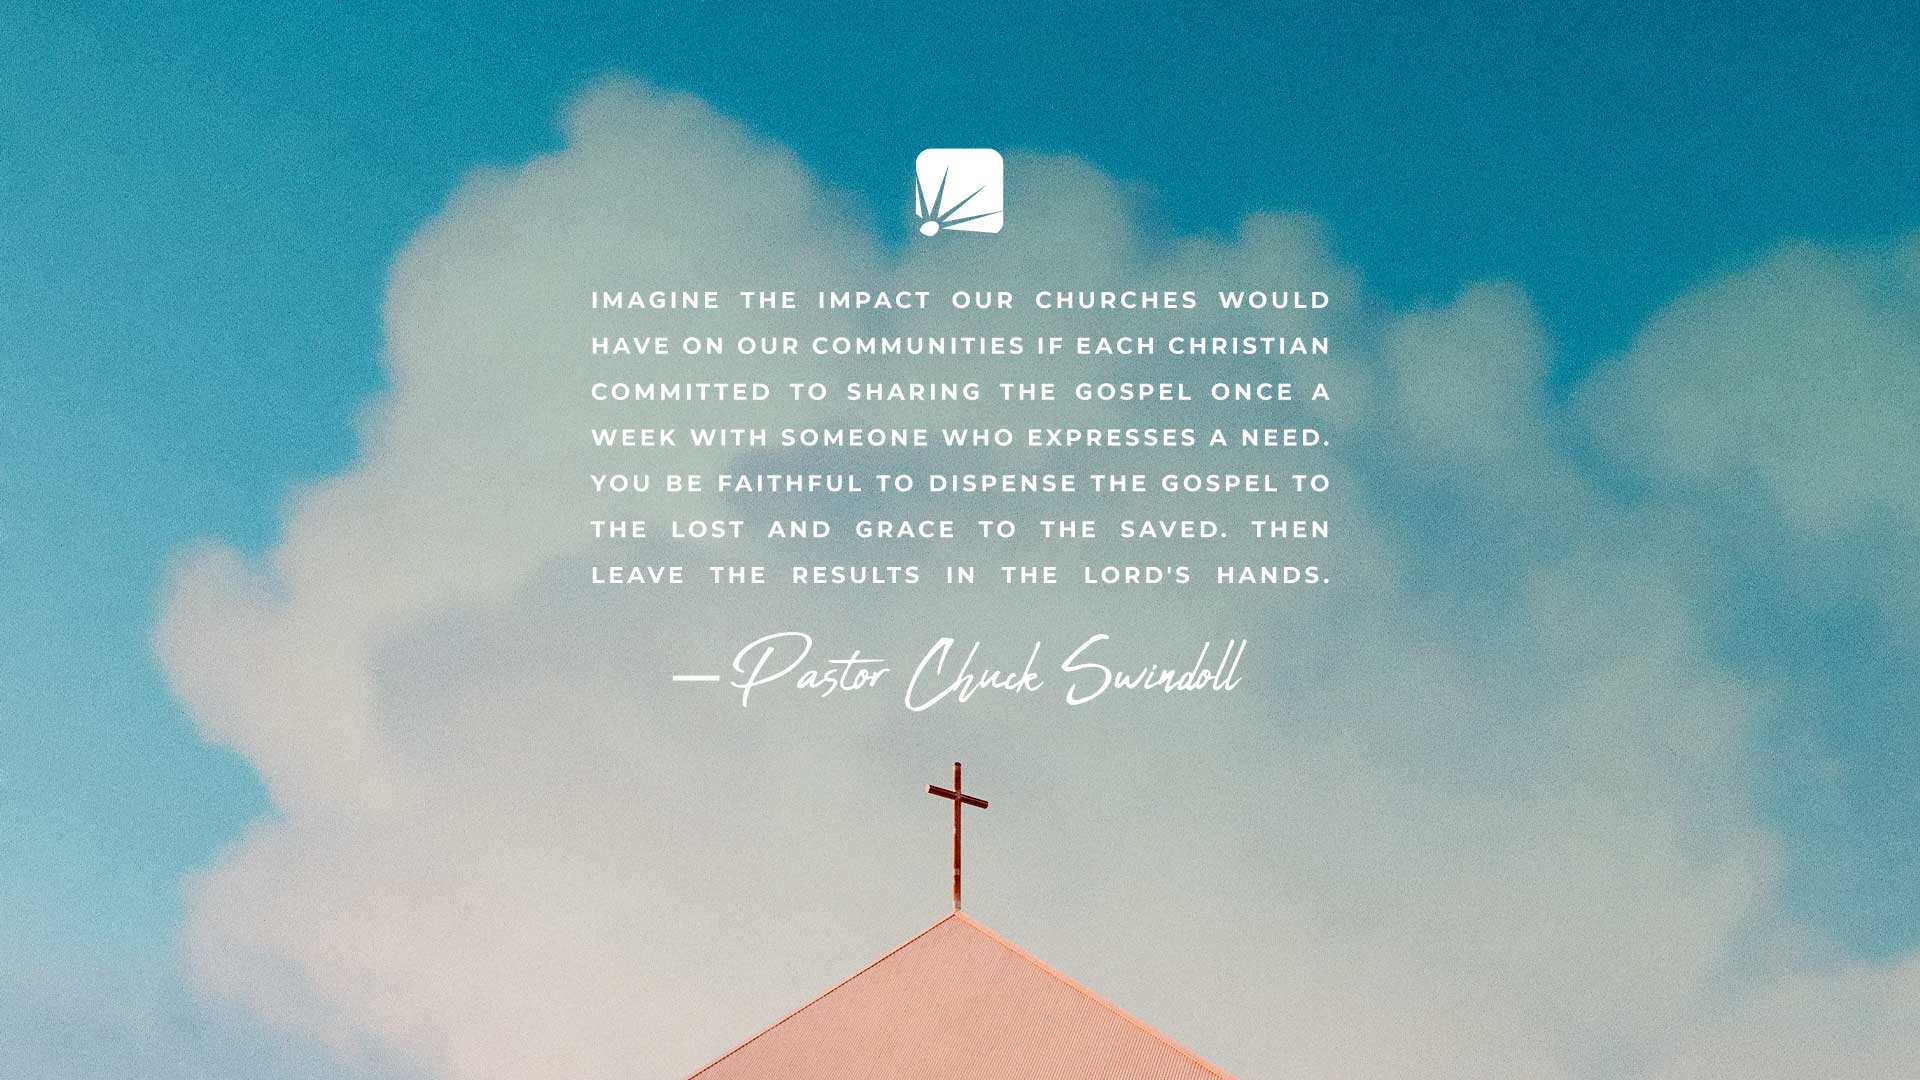 Chuck Swindoll quote about sharing the gospel